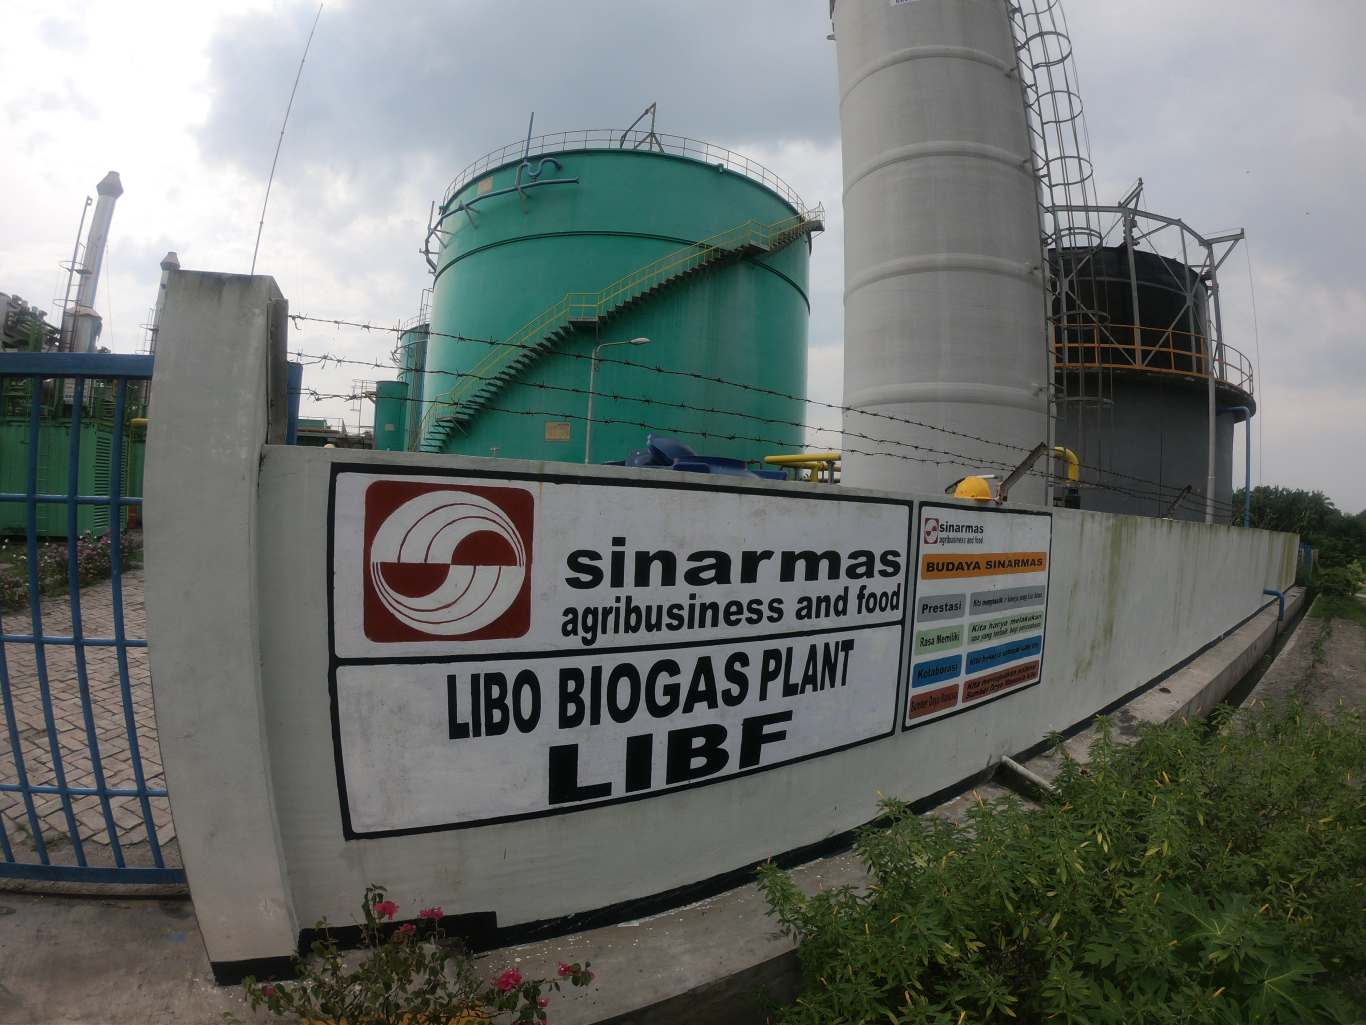 Harnessing biogas in palm oil production - Golden Agri-Resources